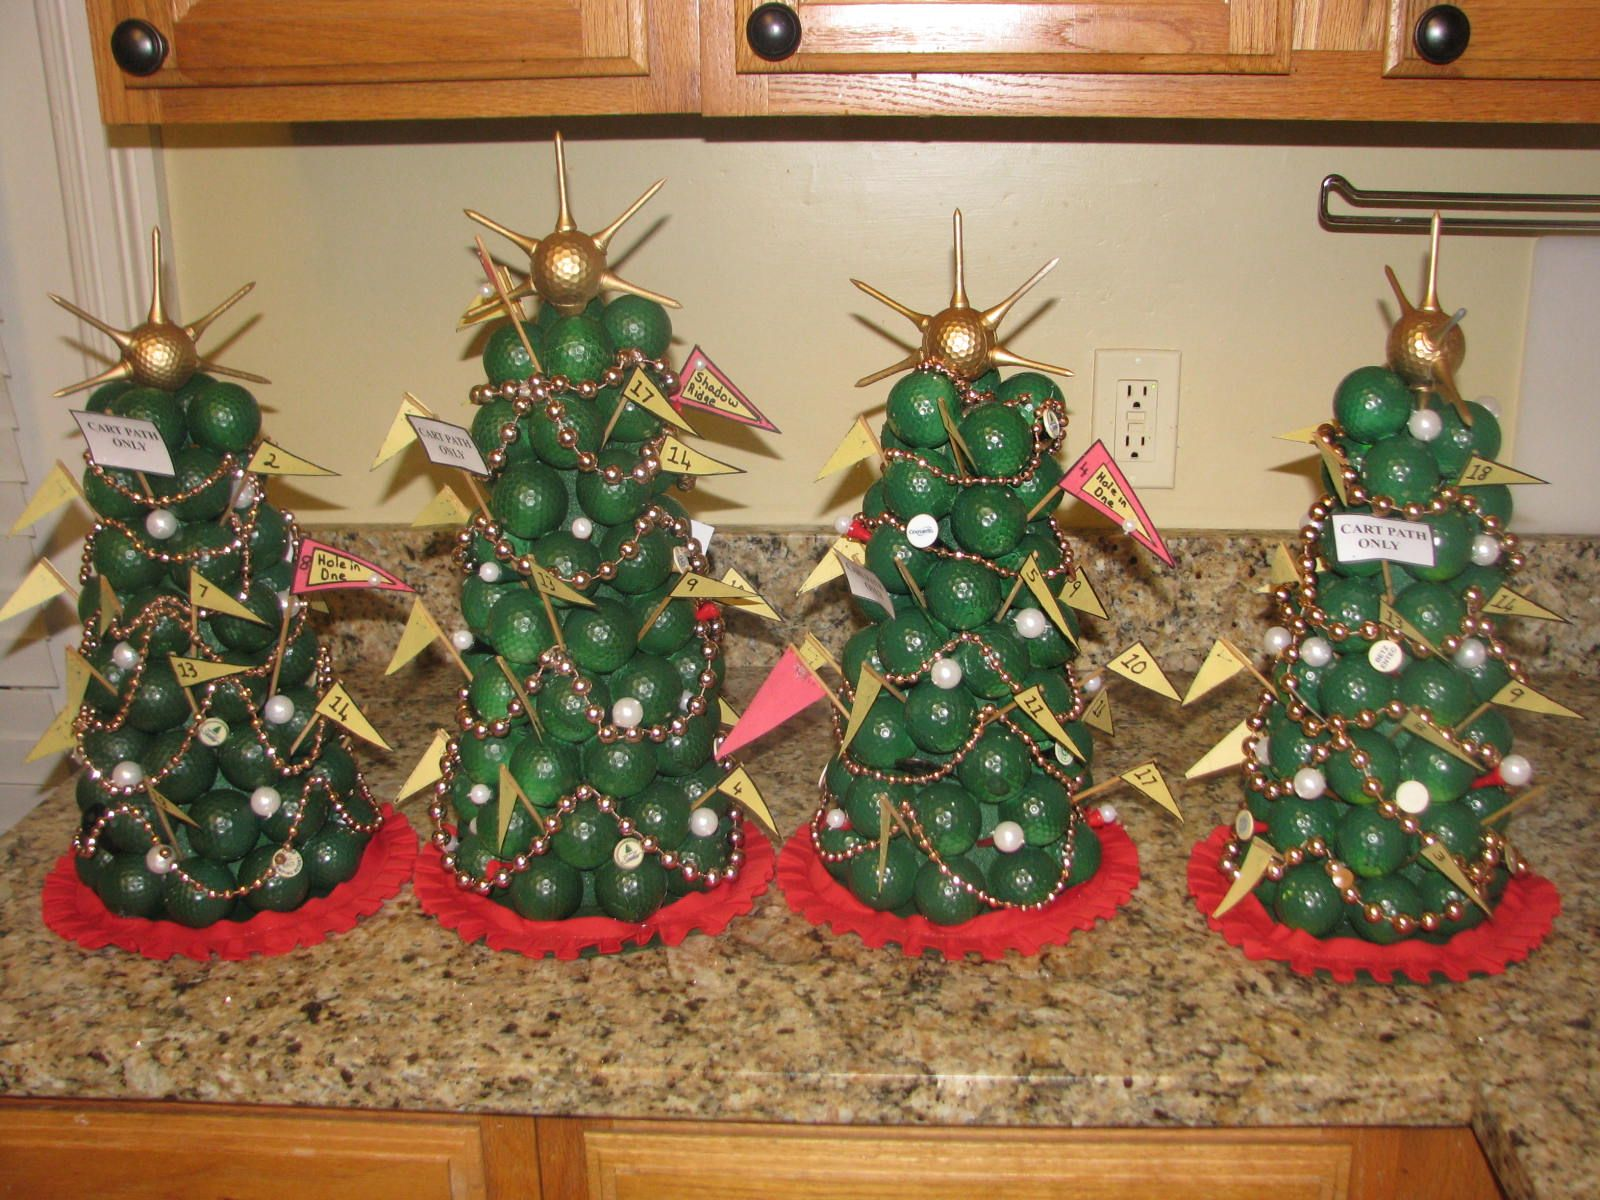 Christmas Trees Made From Golf Balls Decorated With Tees Mardi Gras Beads For Miniature Golf Galls And Garlands A St Christmas Golf Golf Ball Crafts Crafts